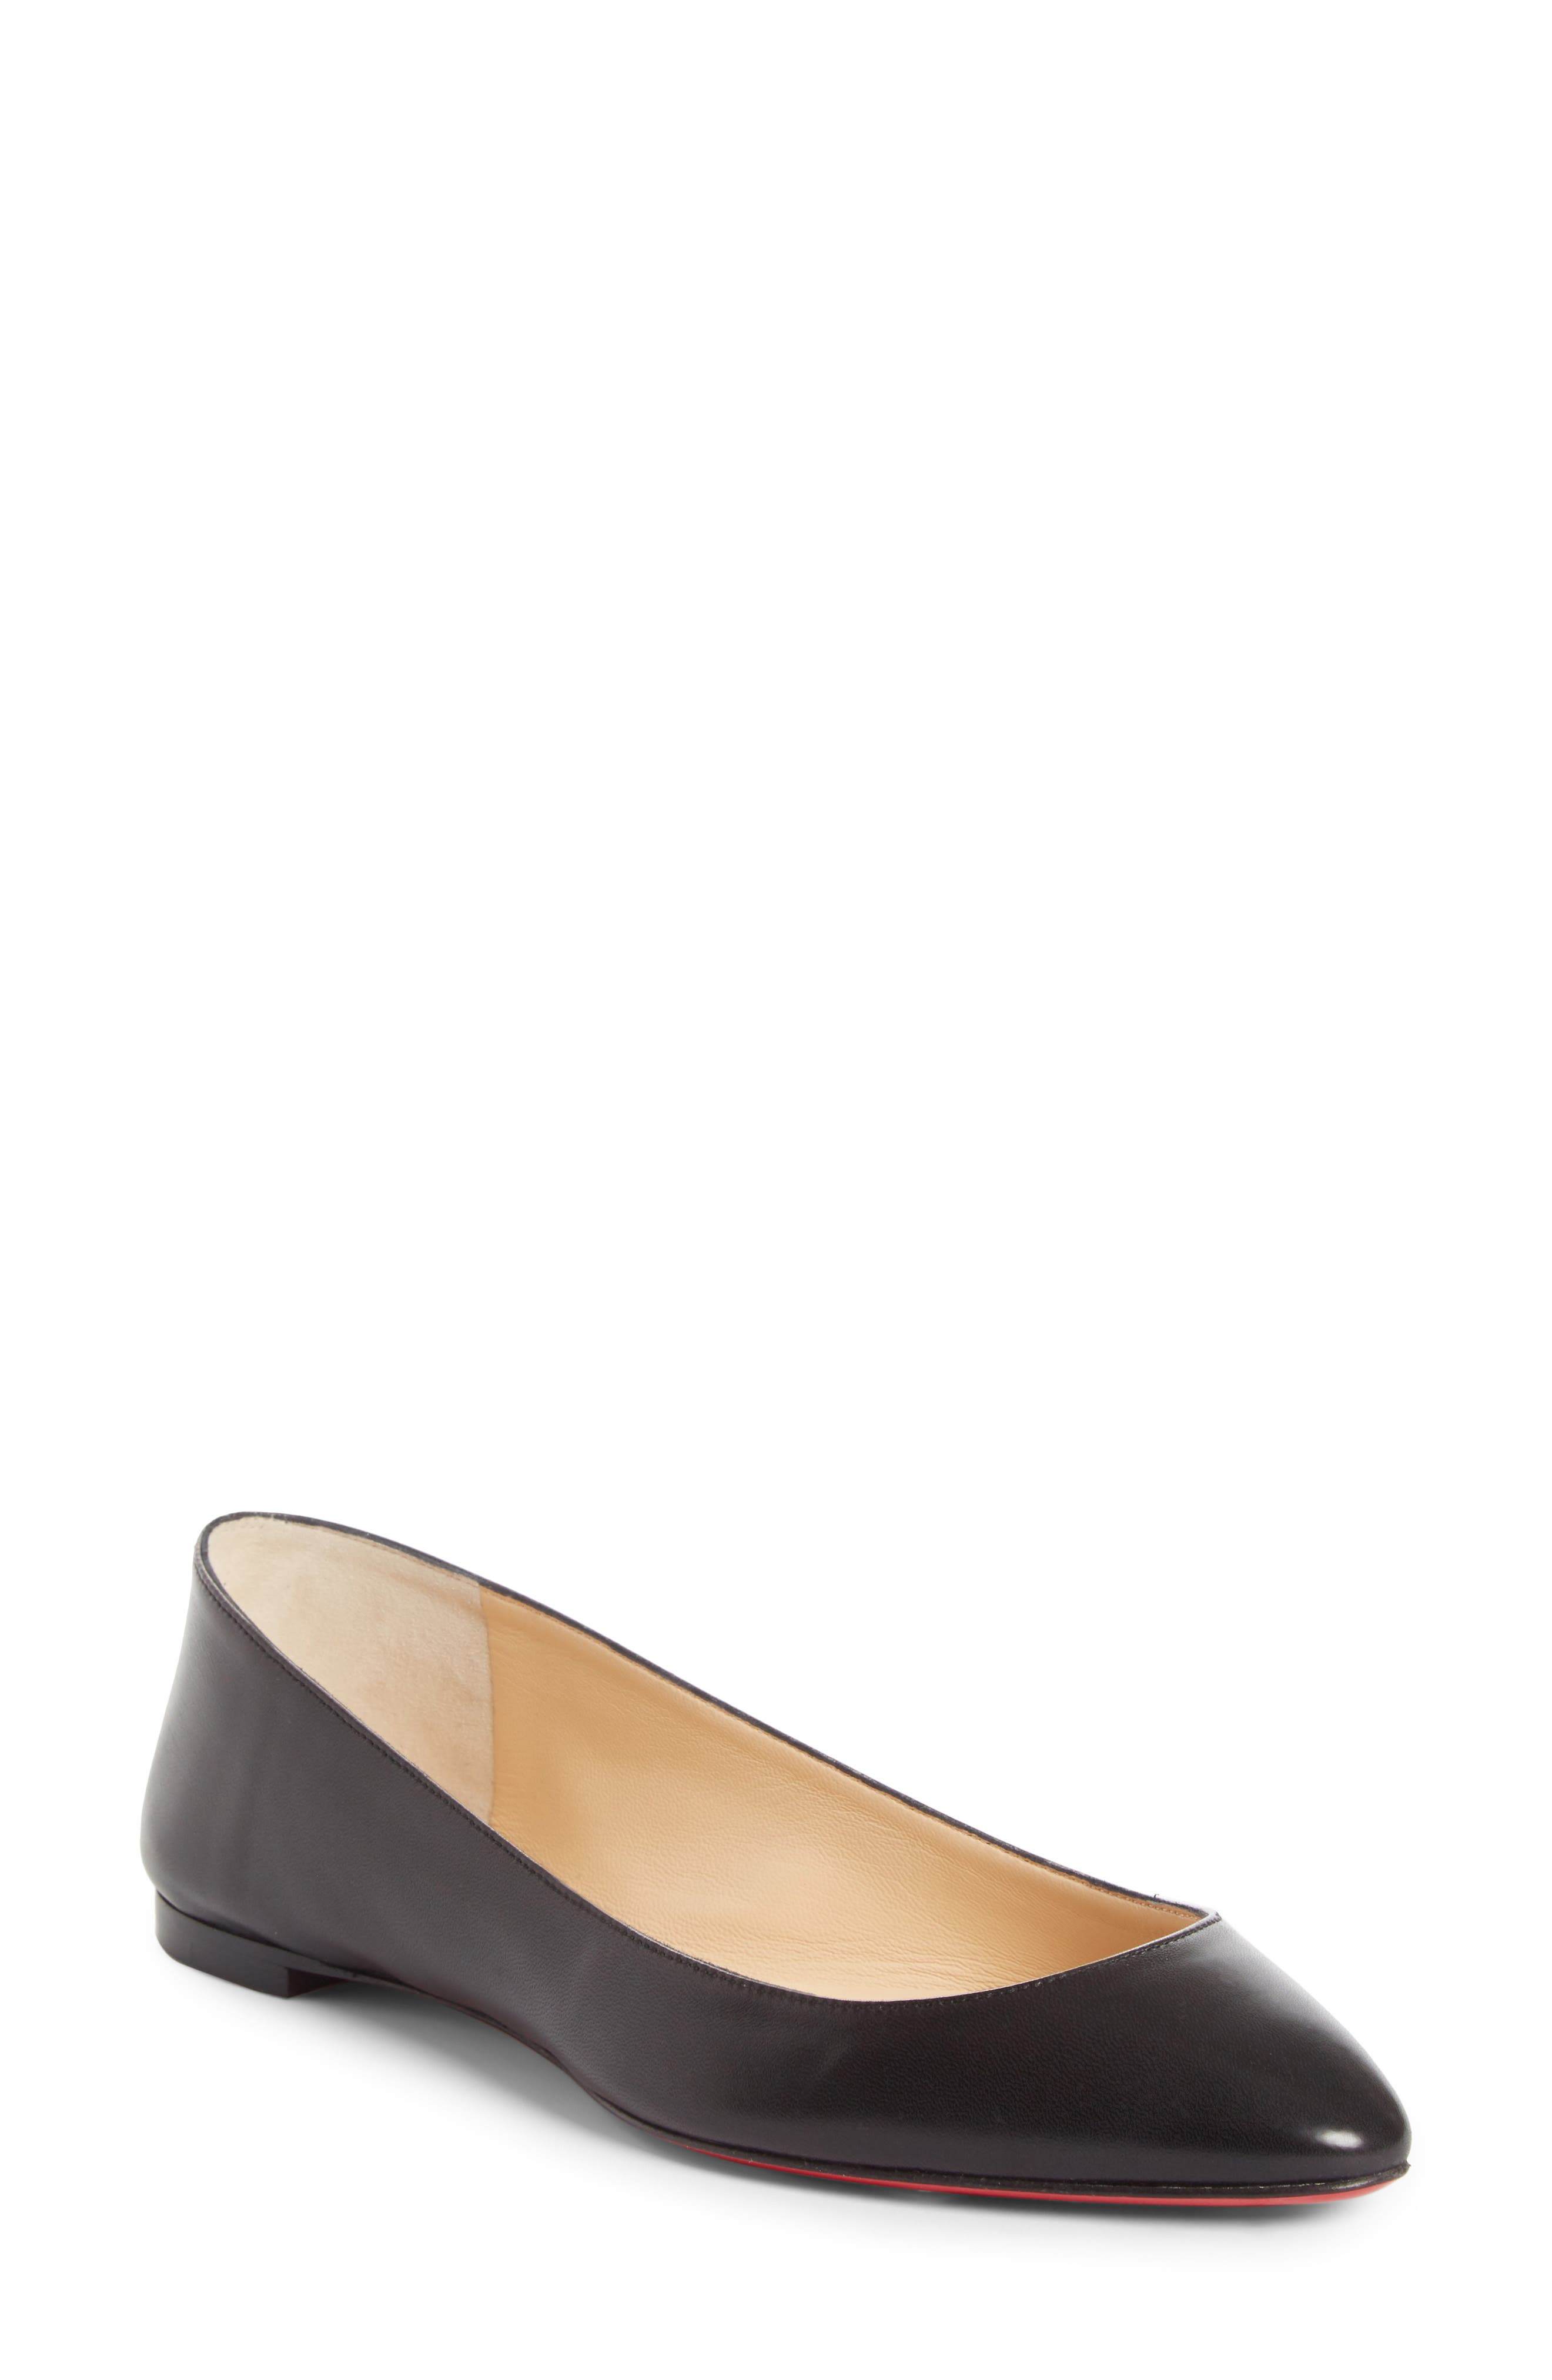 Eloise Flat,                         Main,                         color, BLACK LEATHER